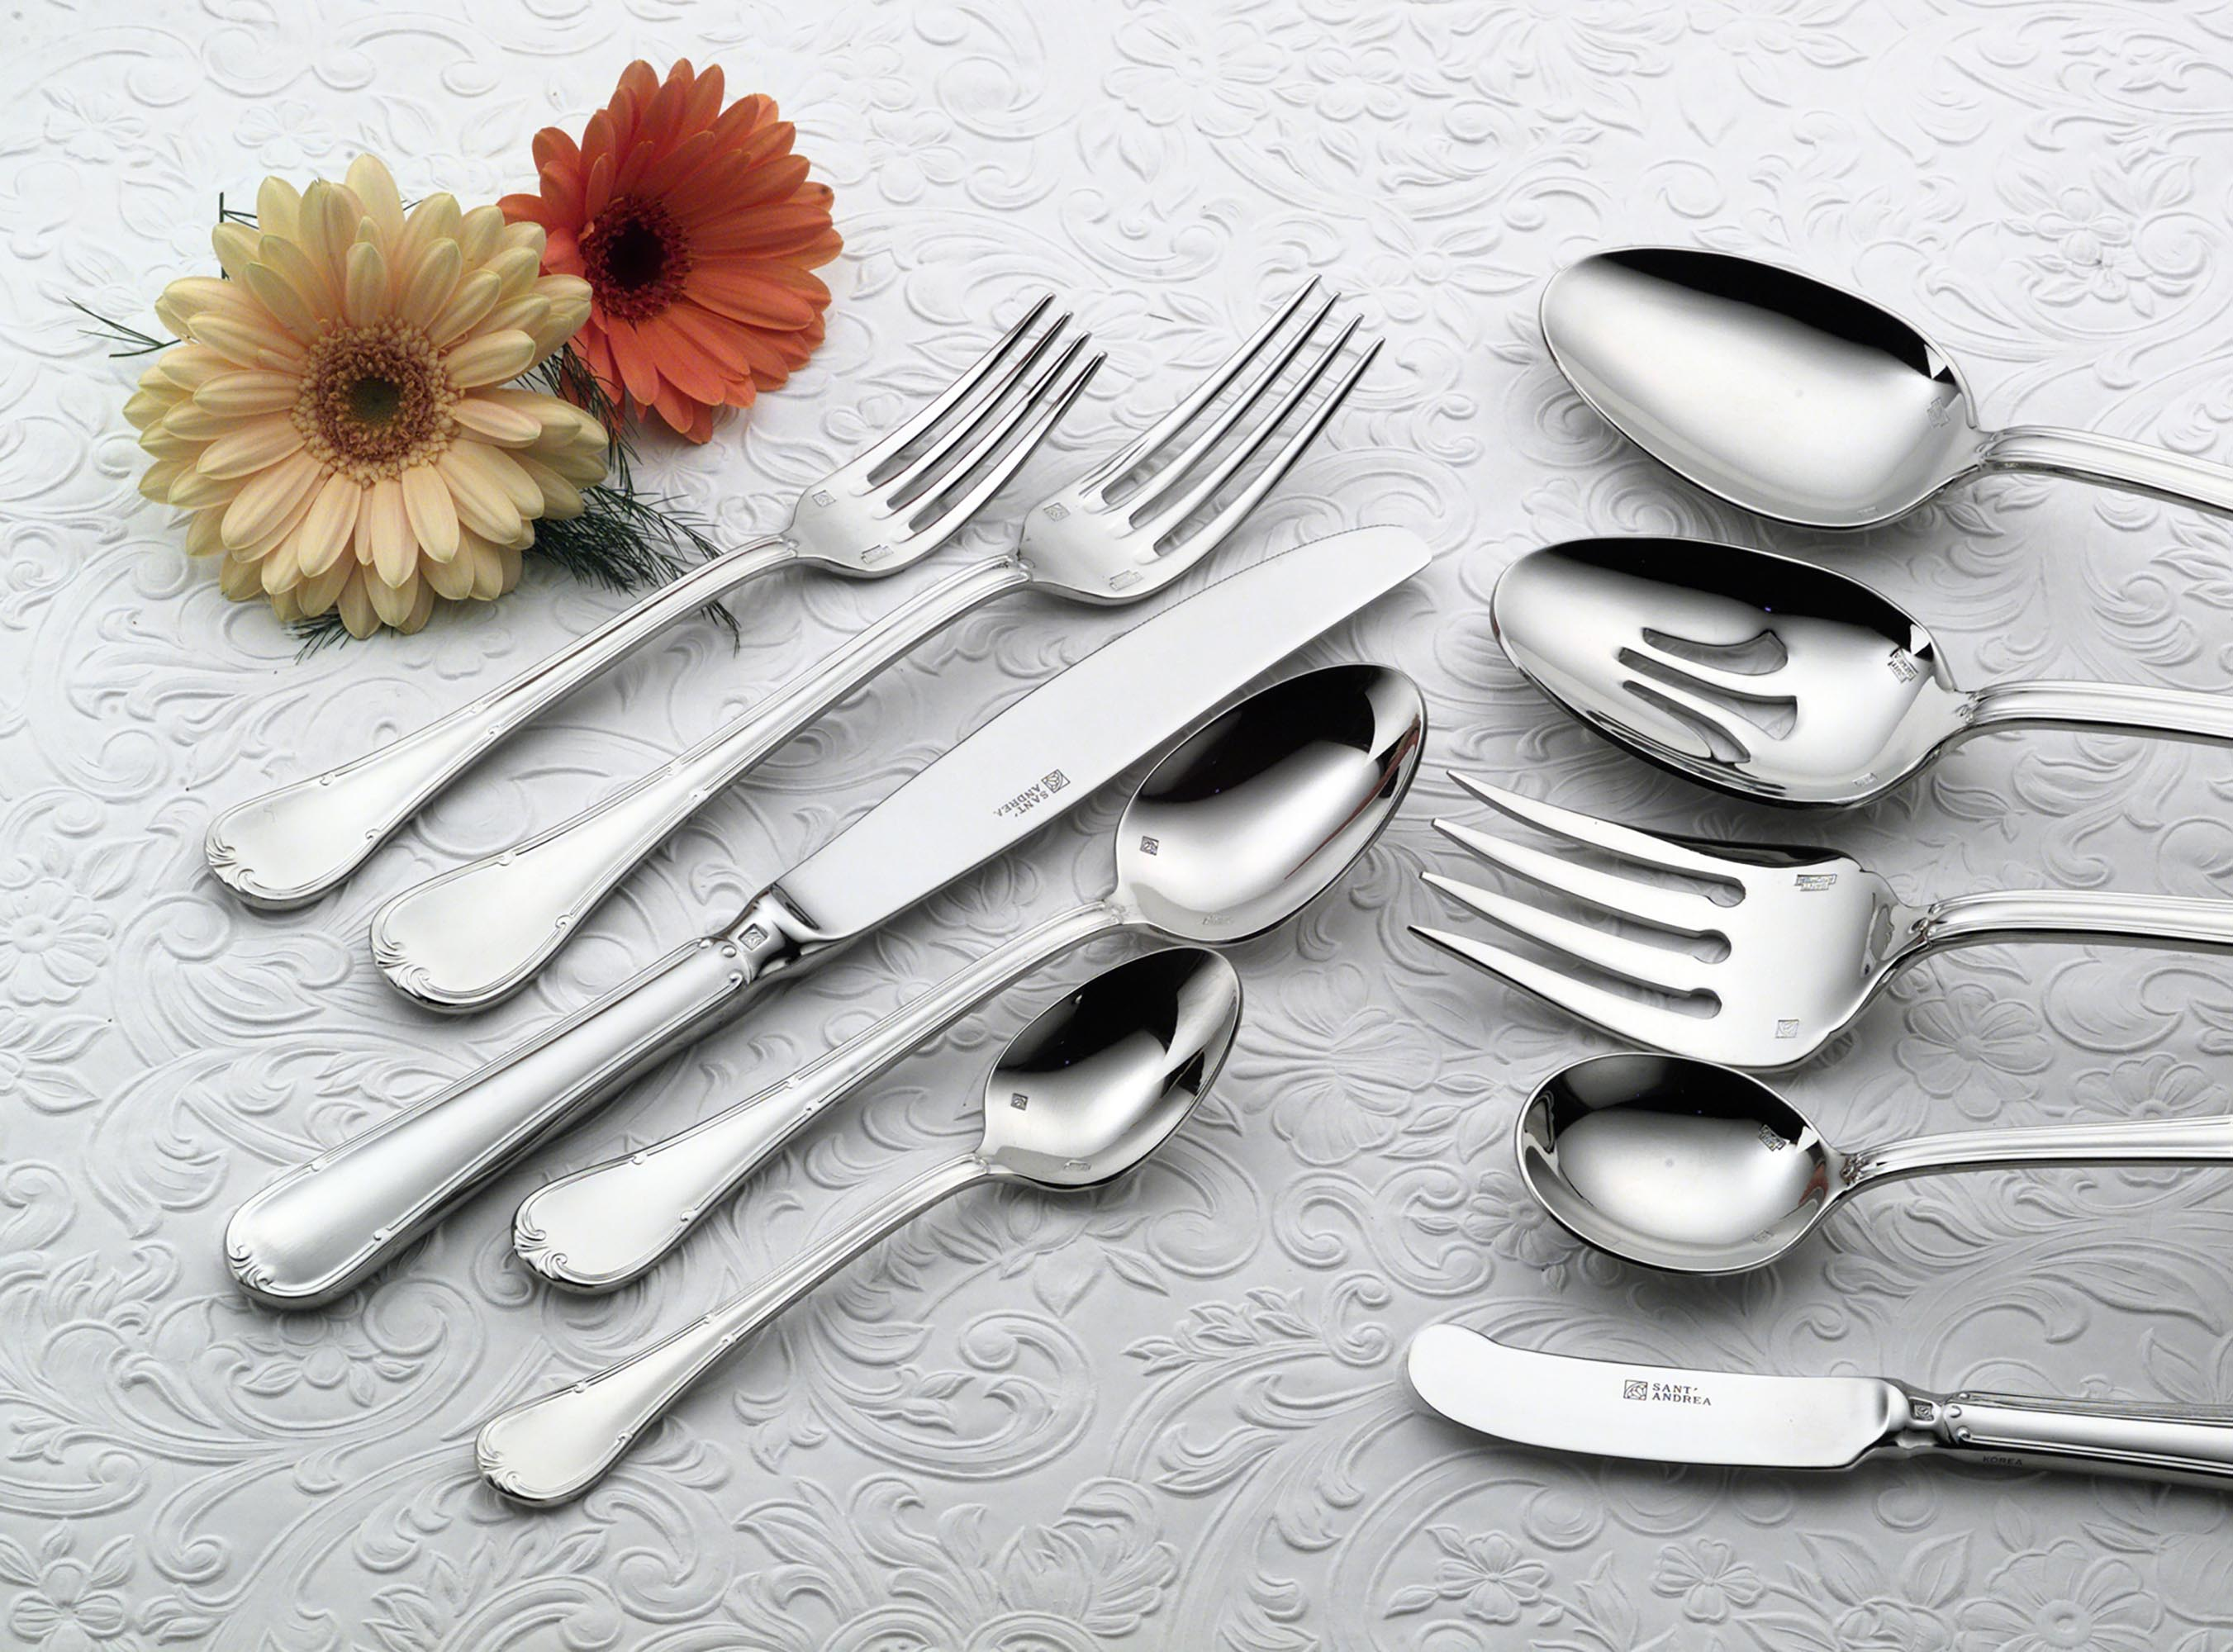 Sant Andrea 18 10 Stainless Steel Donizetti Butter Knives Set Of 12 By Oneida Ebay